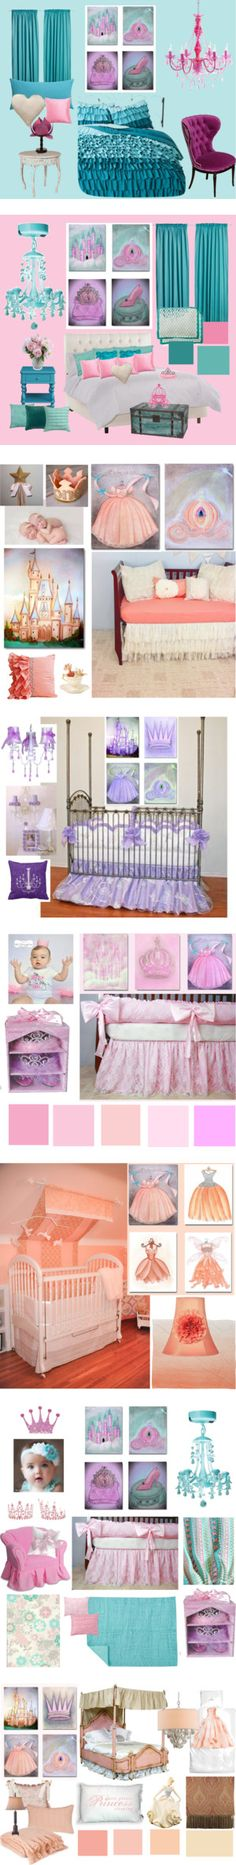 Xhilaration Wall Decor : Images about princess nursery decor on